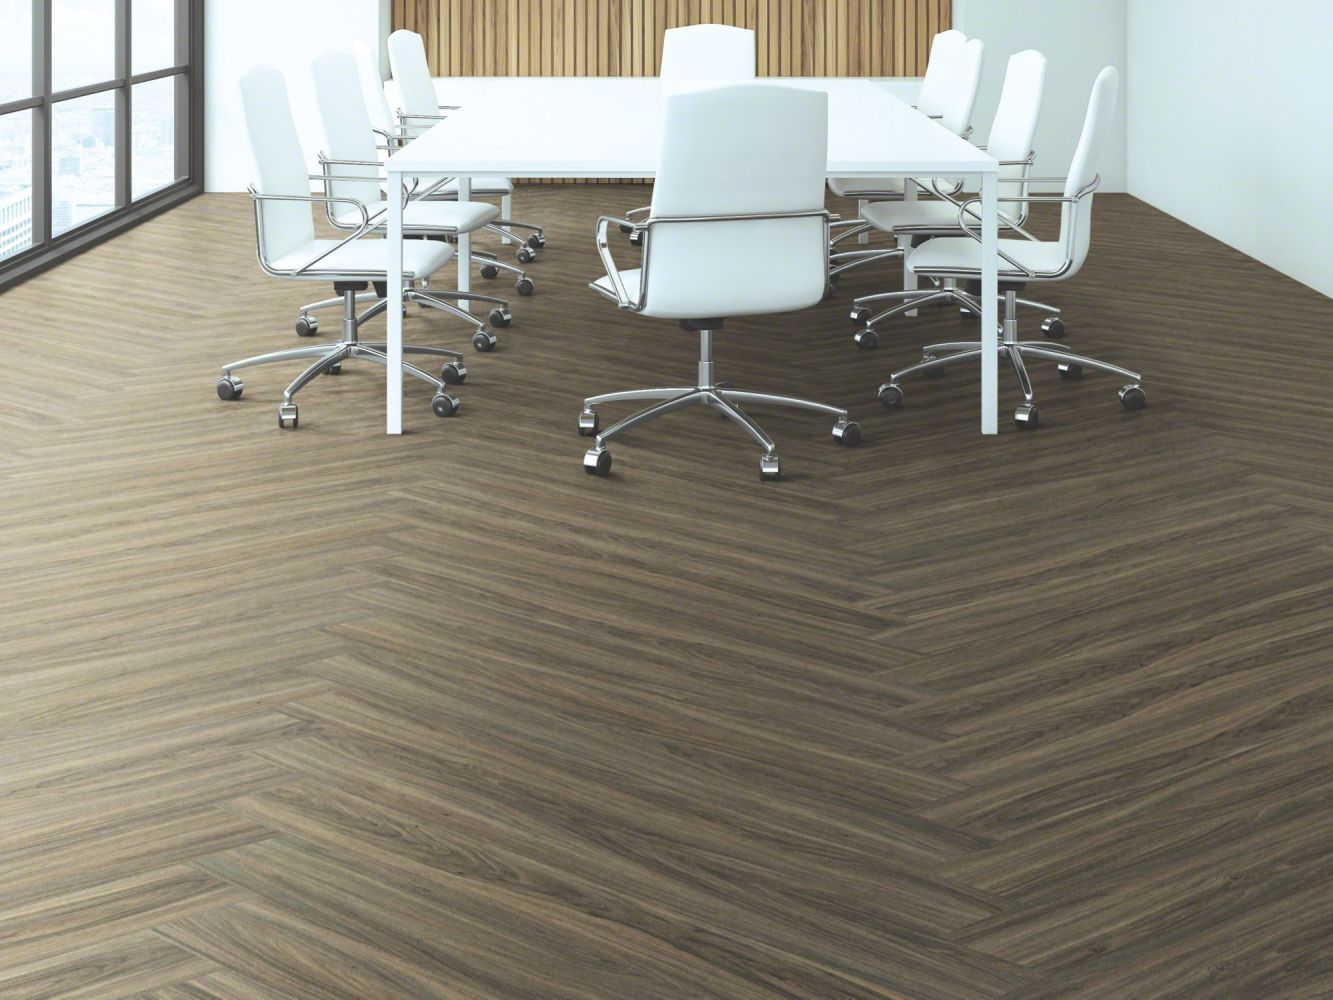 Shaw Floors Resilient Property Solutions Optimum 512c Plus Cinnamon Walnut 00150_VE210